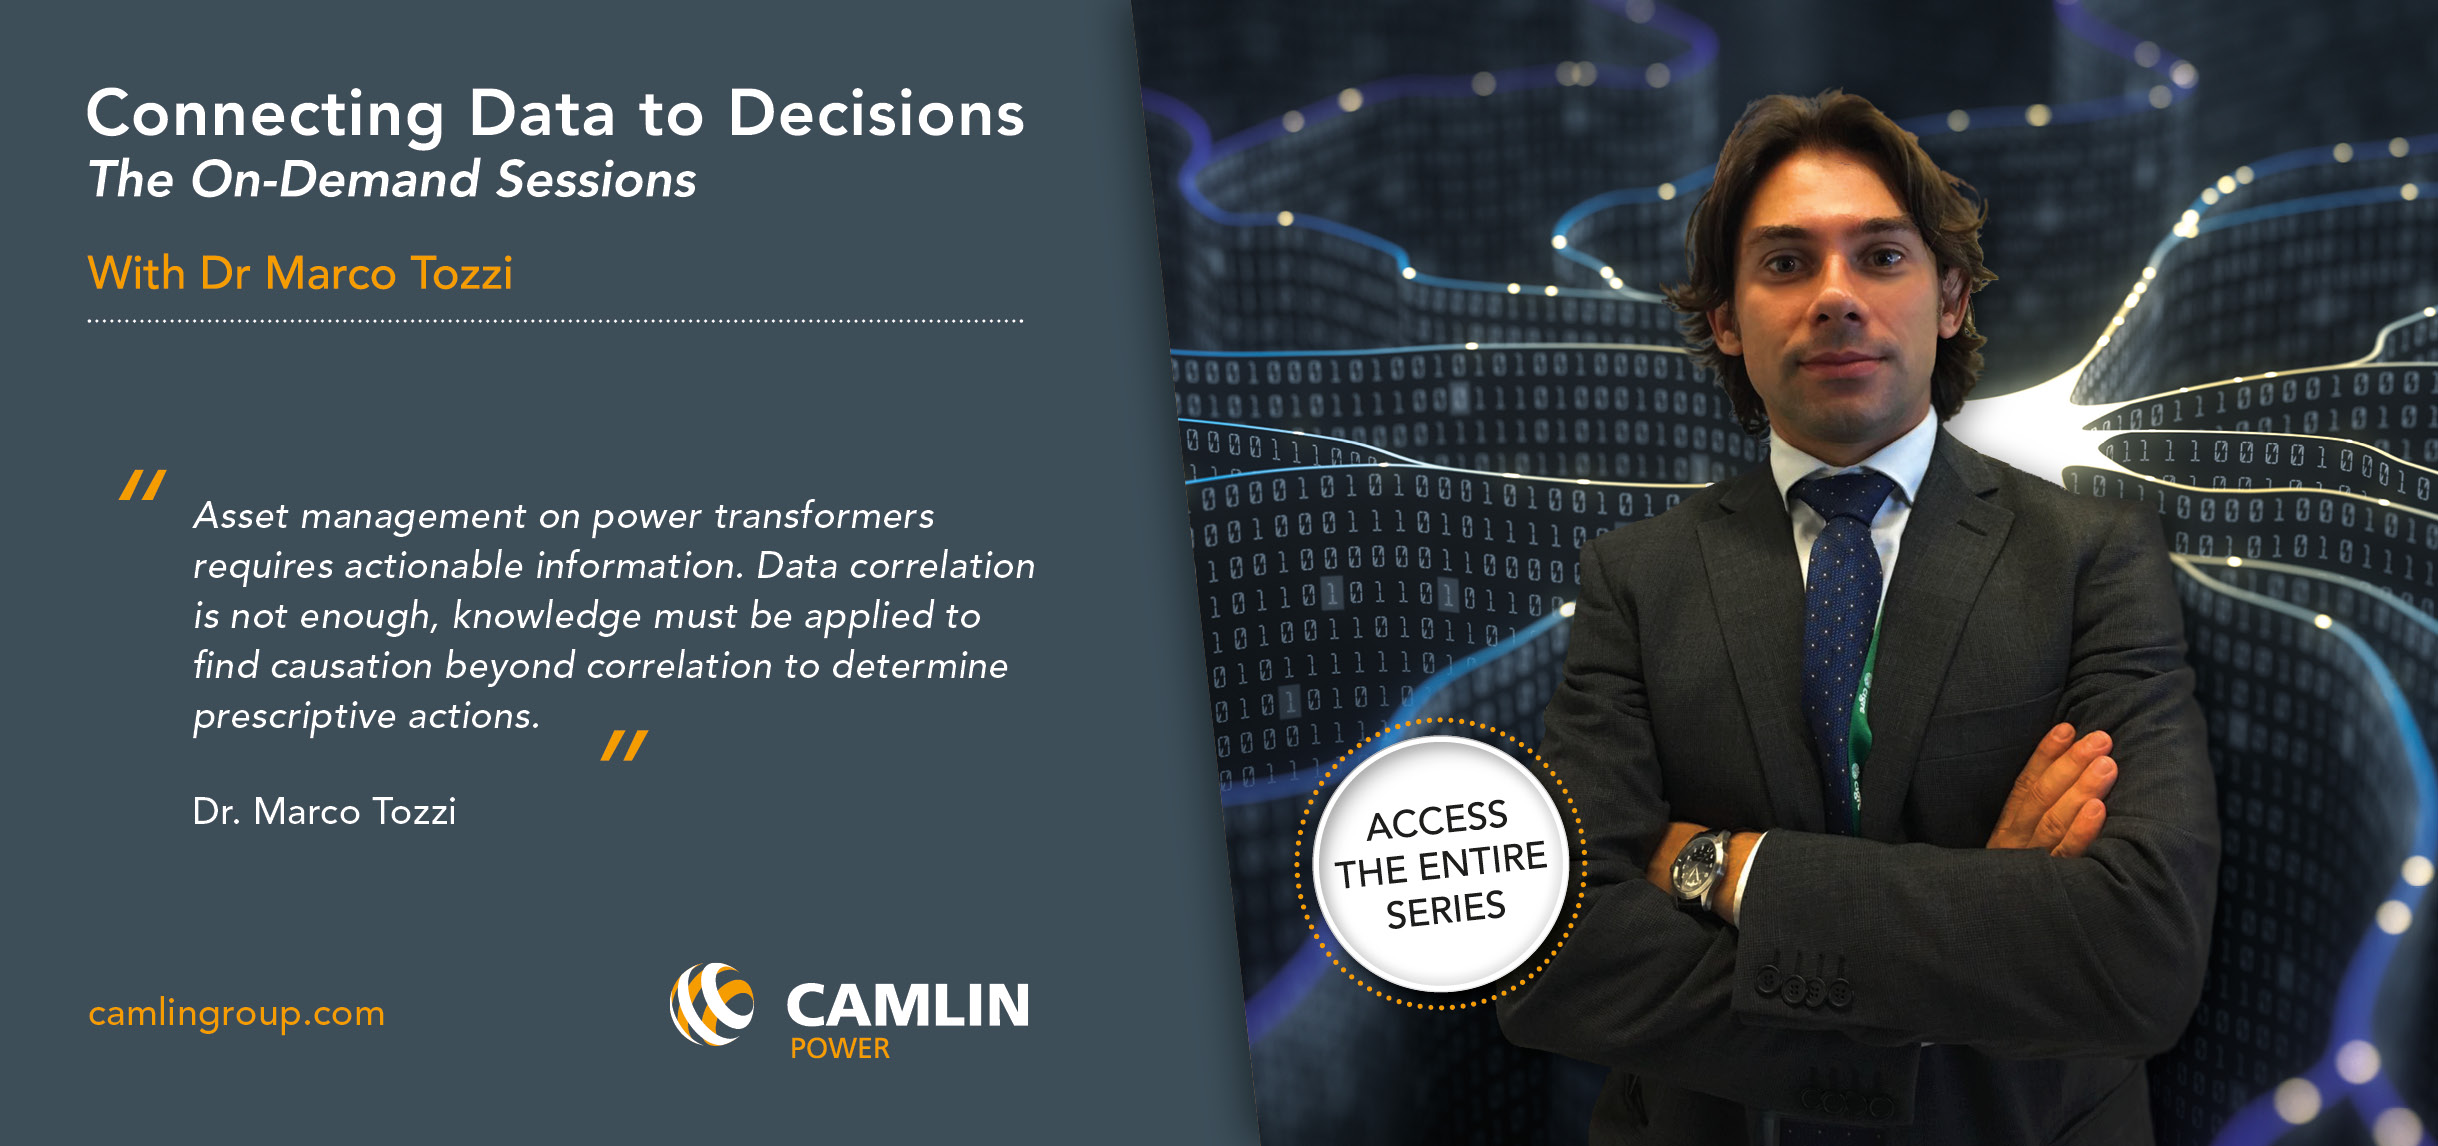 CONNECTING DATA TO DECISIONS THE ON-DEMAND SESSIONS With Dr Marco Tozzi webinar series Camlin Power transformer technology